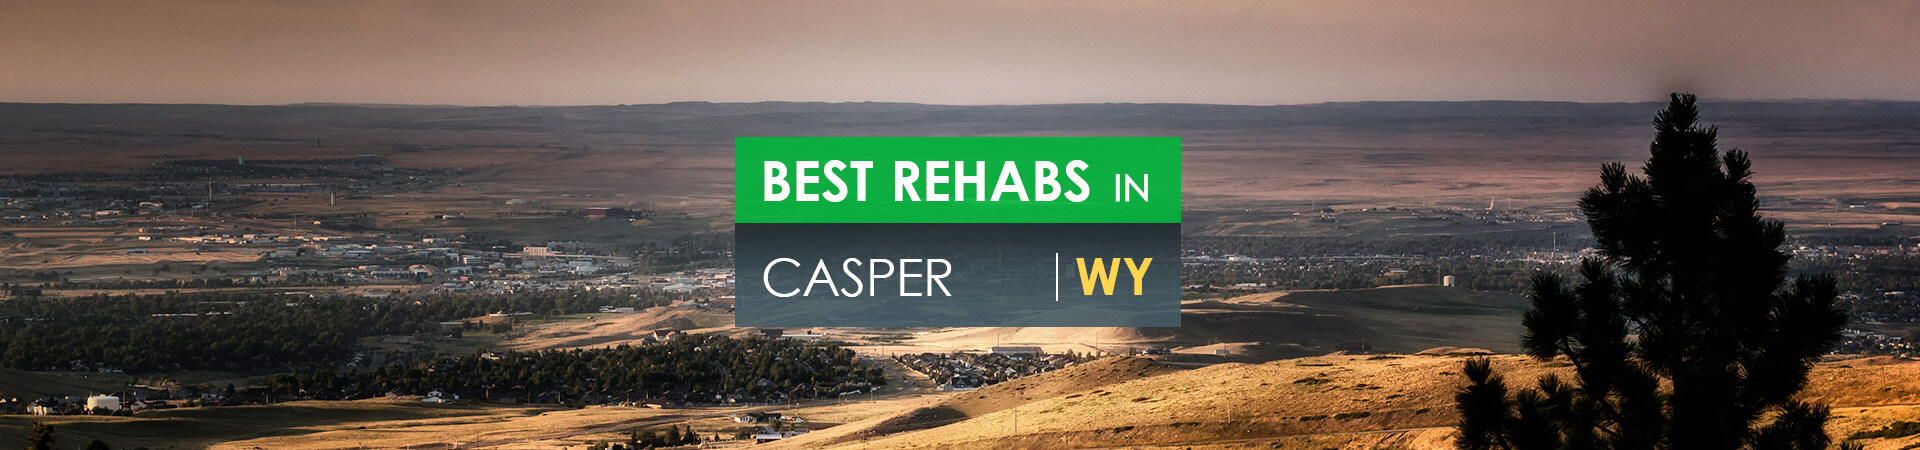 Best rehabs in Casper, WY